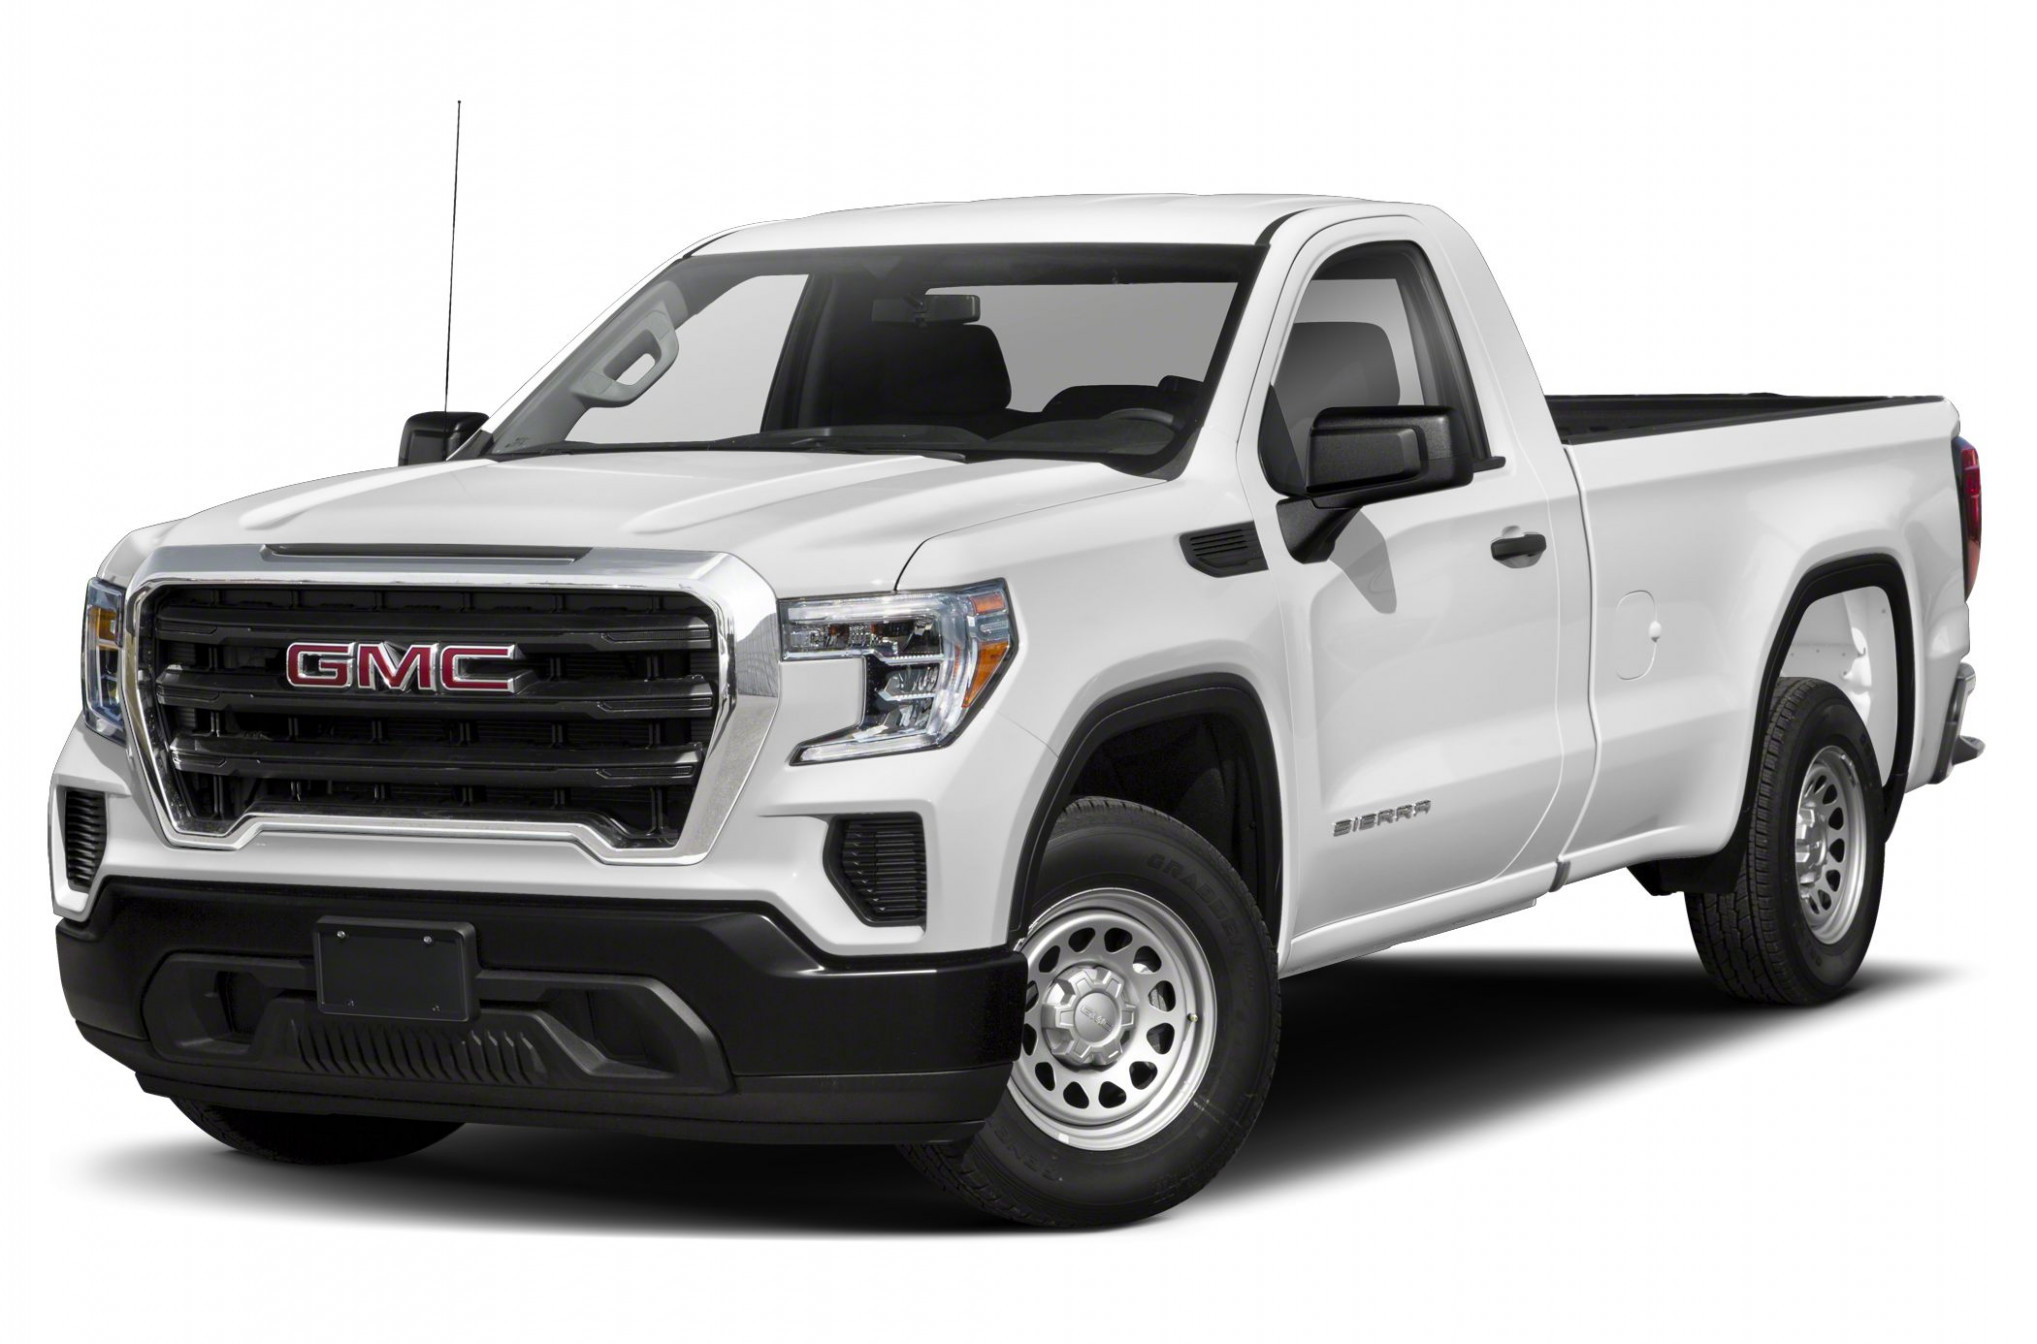 7 GMC Sierra 7 Rebates and Incentives